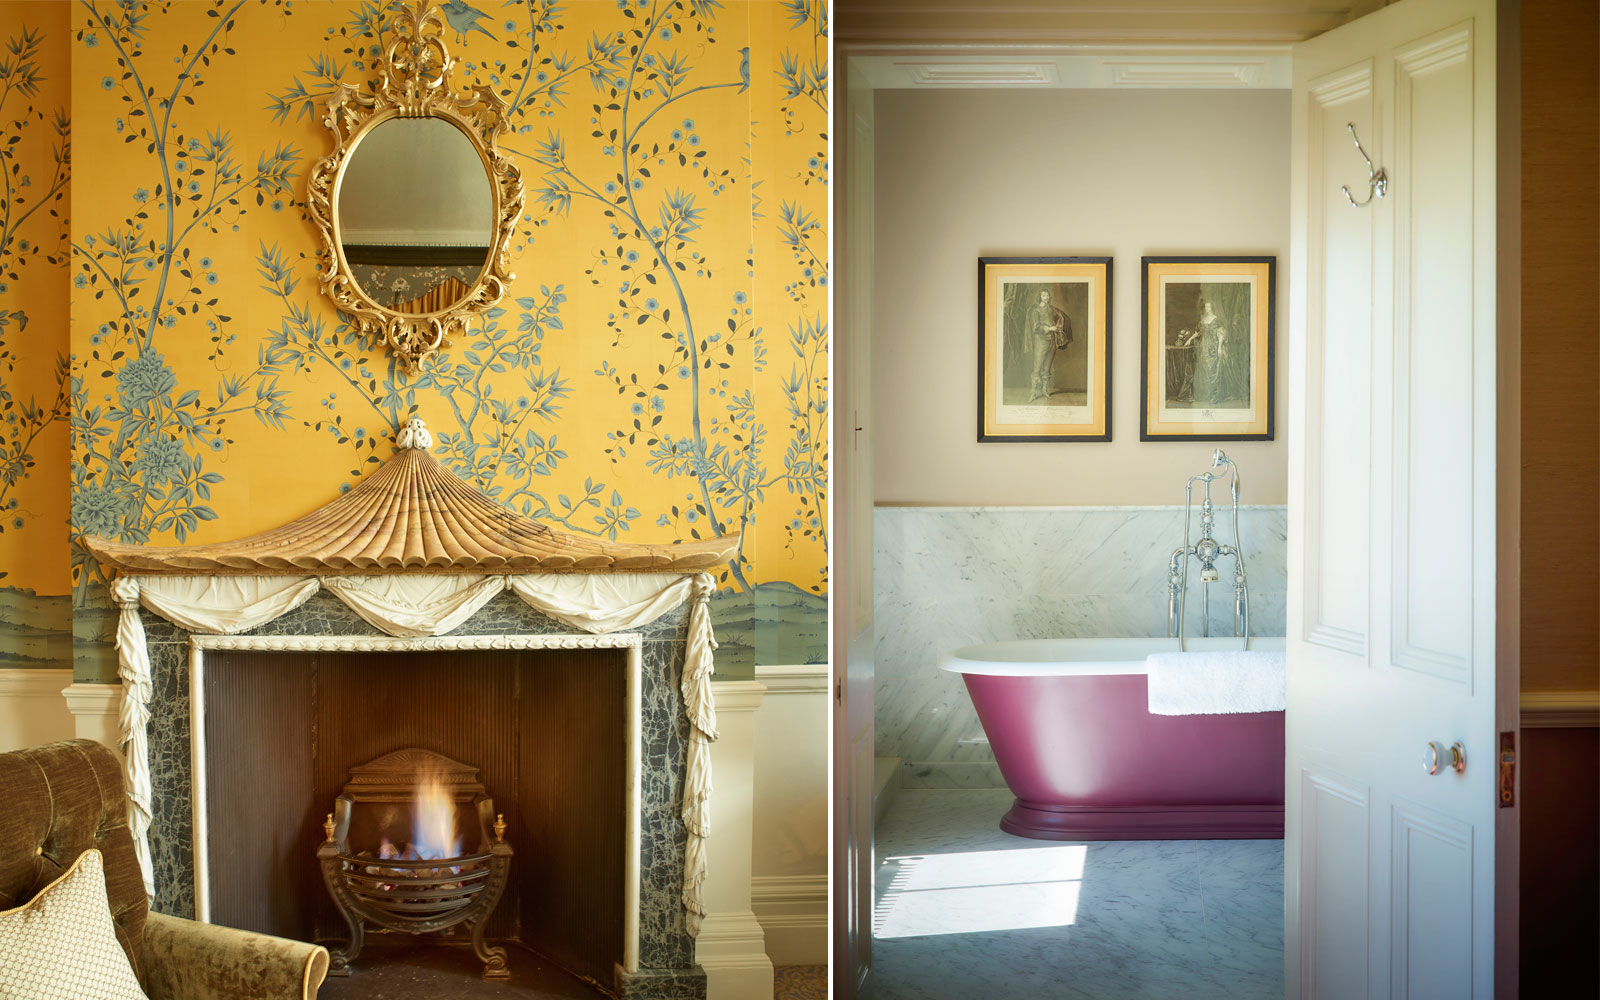 fireplace and bathroom at Cliveden House